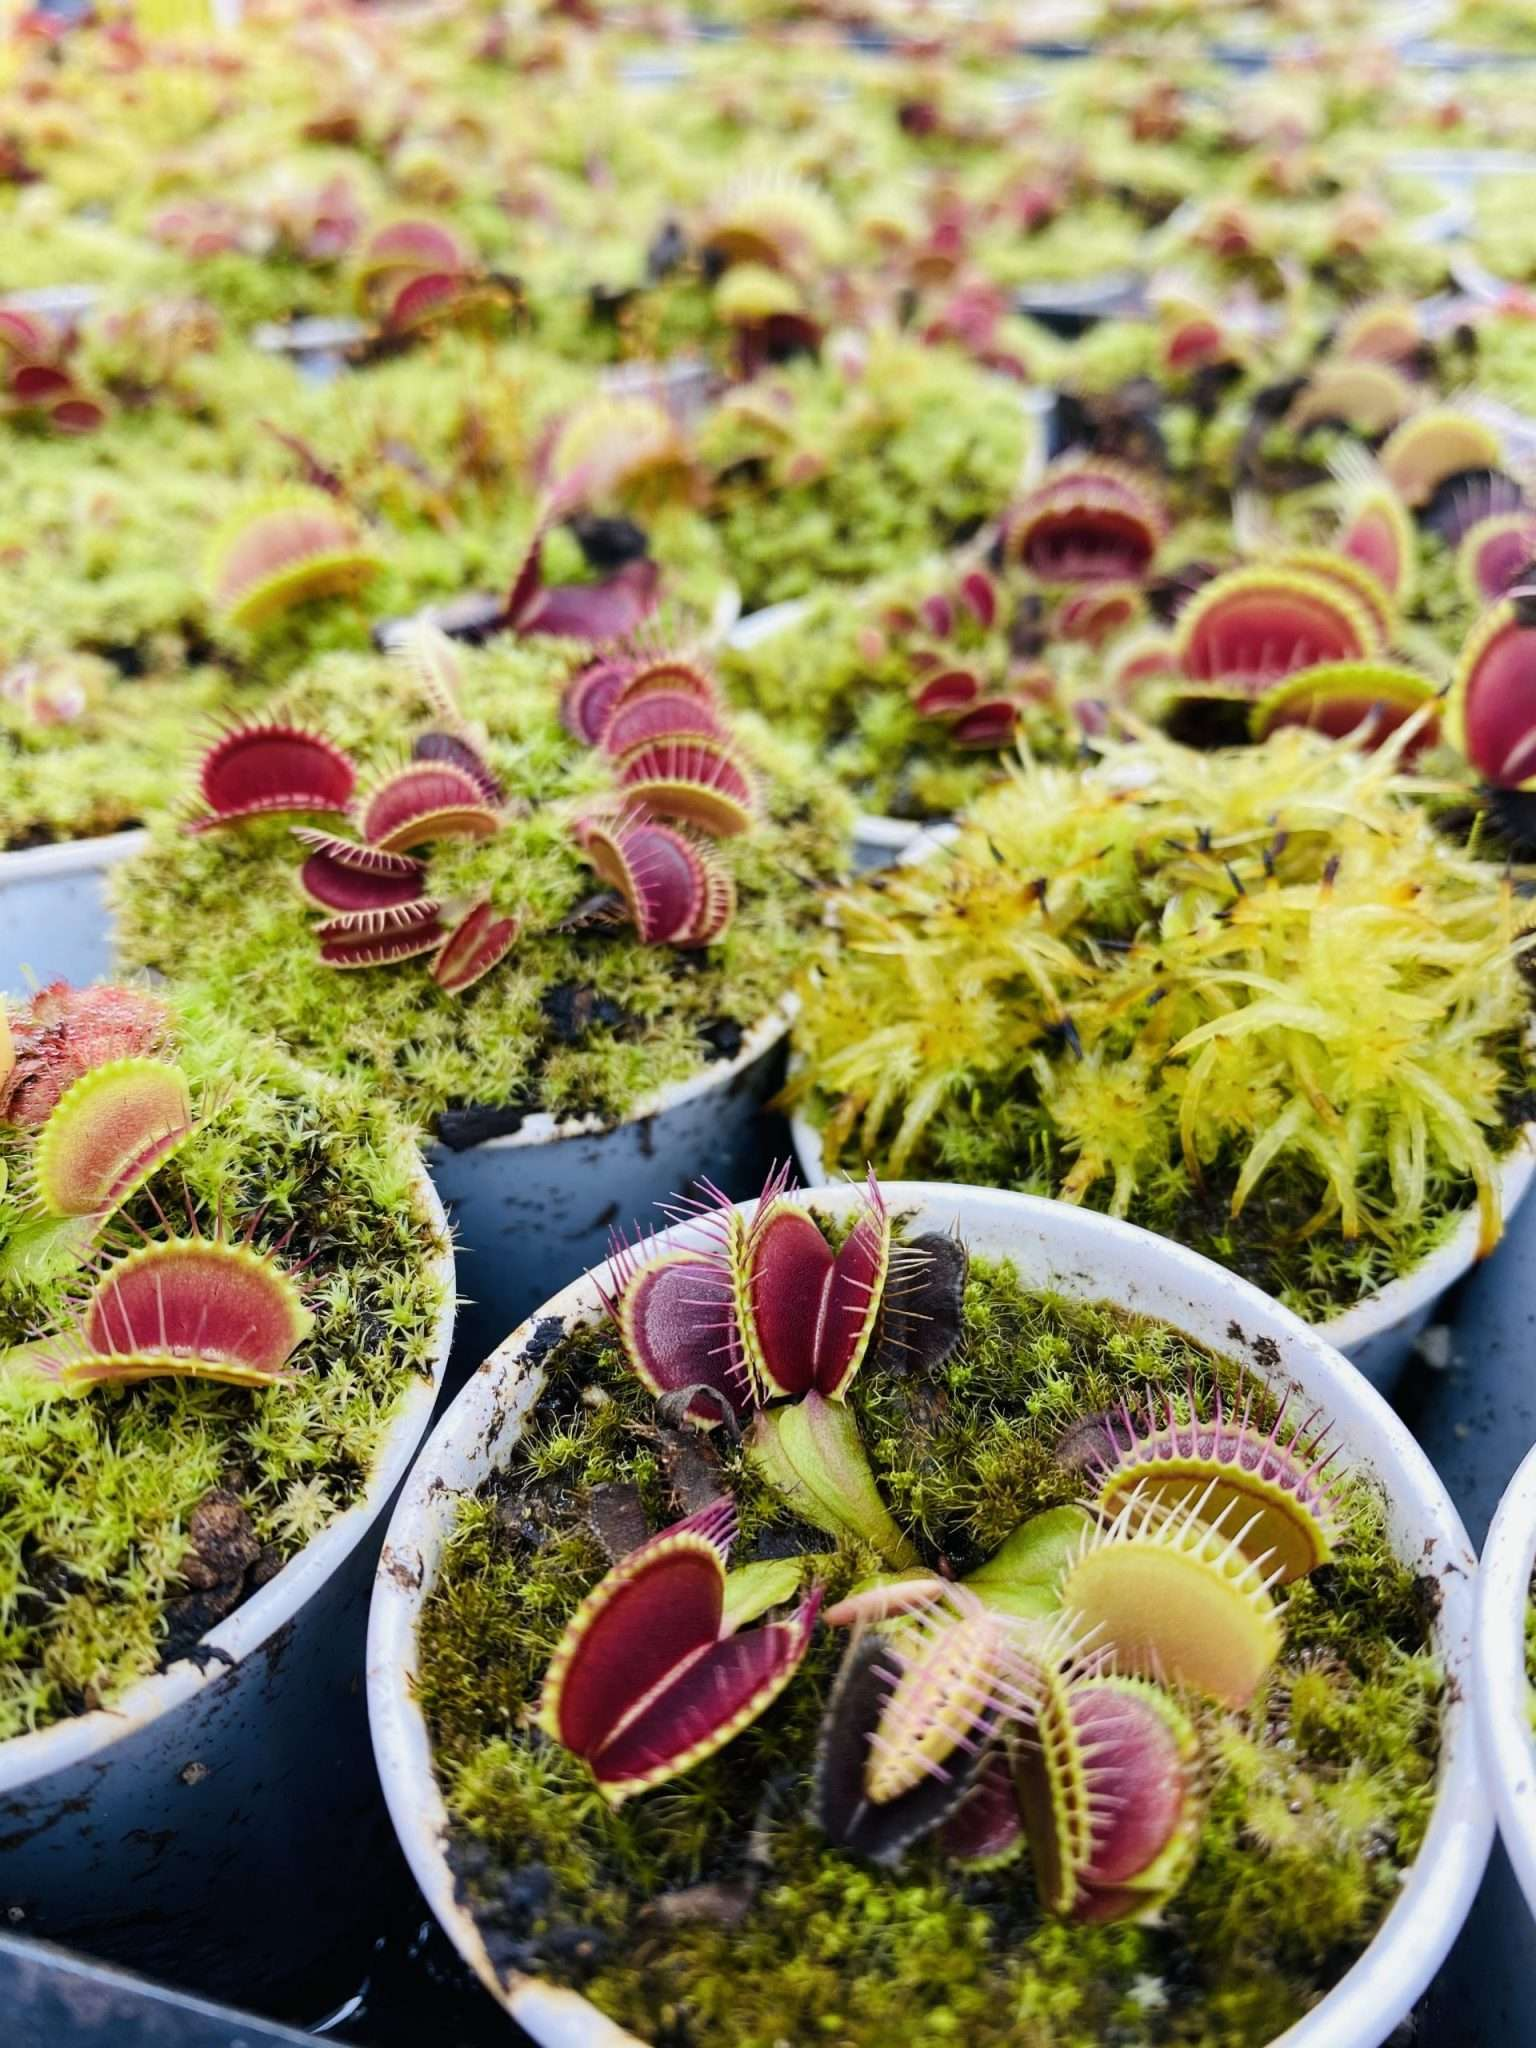 Dionaea muscipula *seed grown*